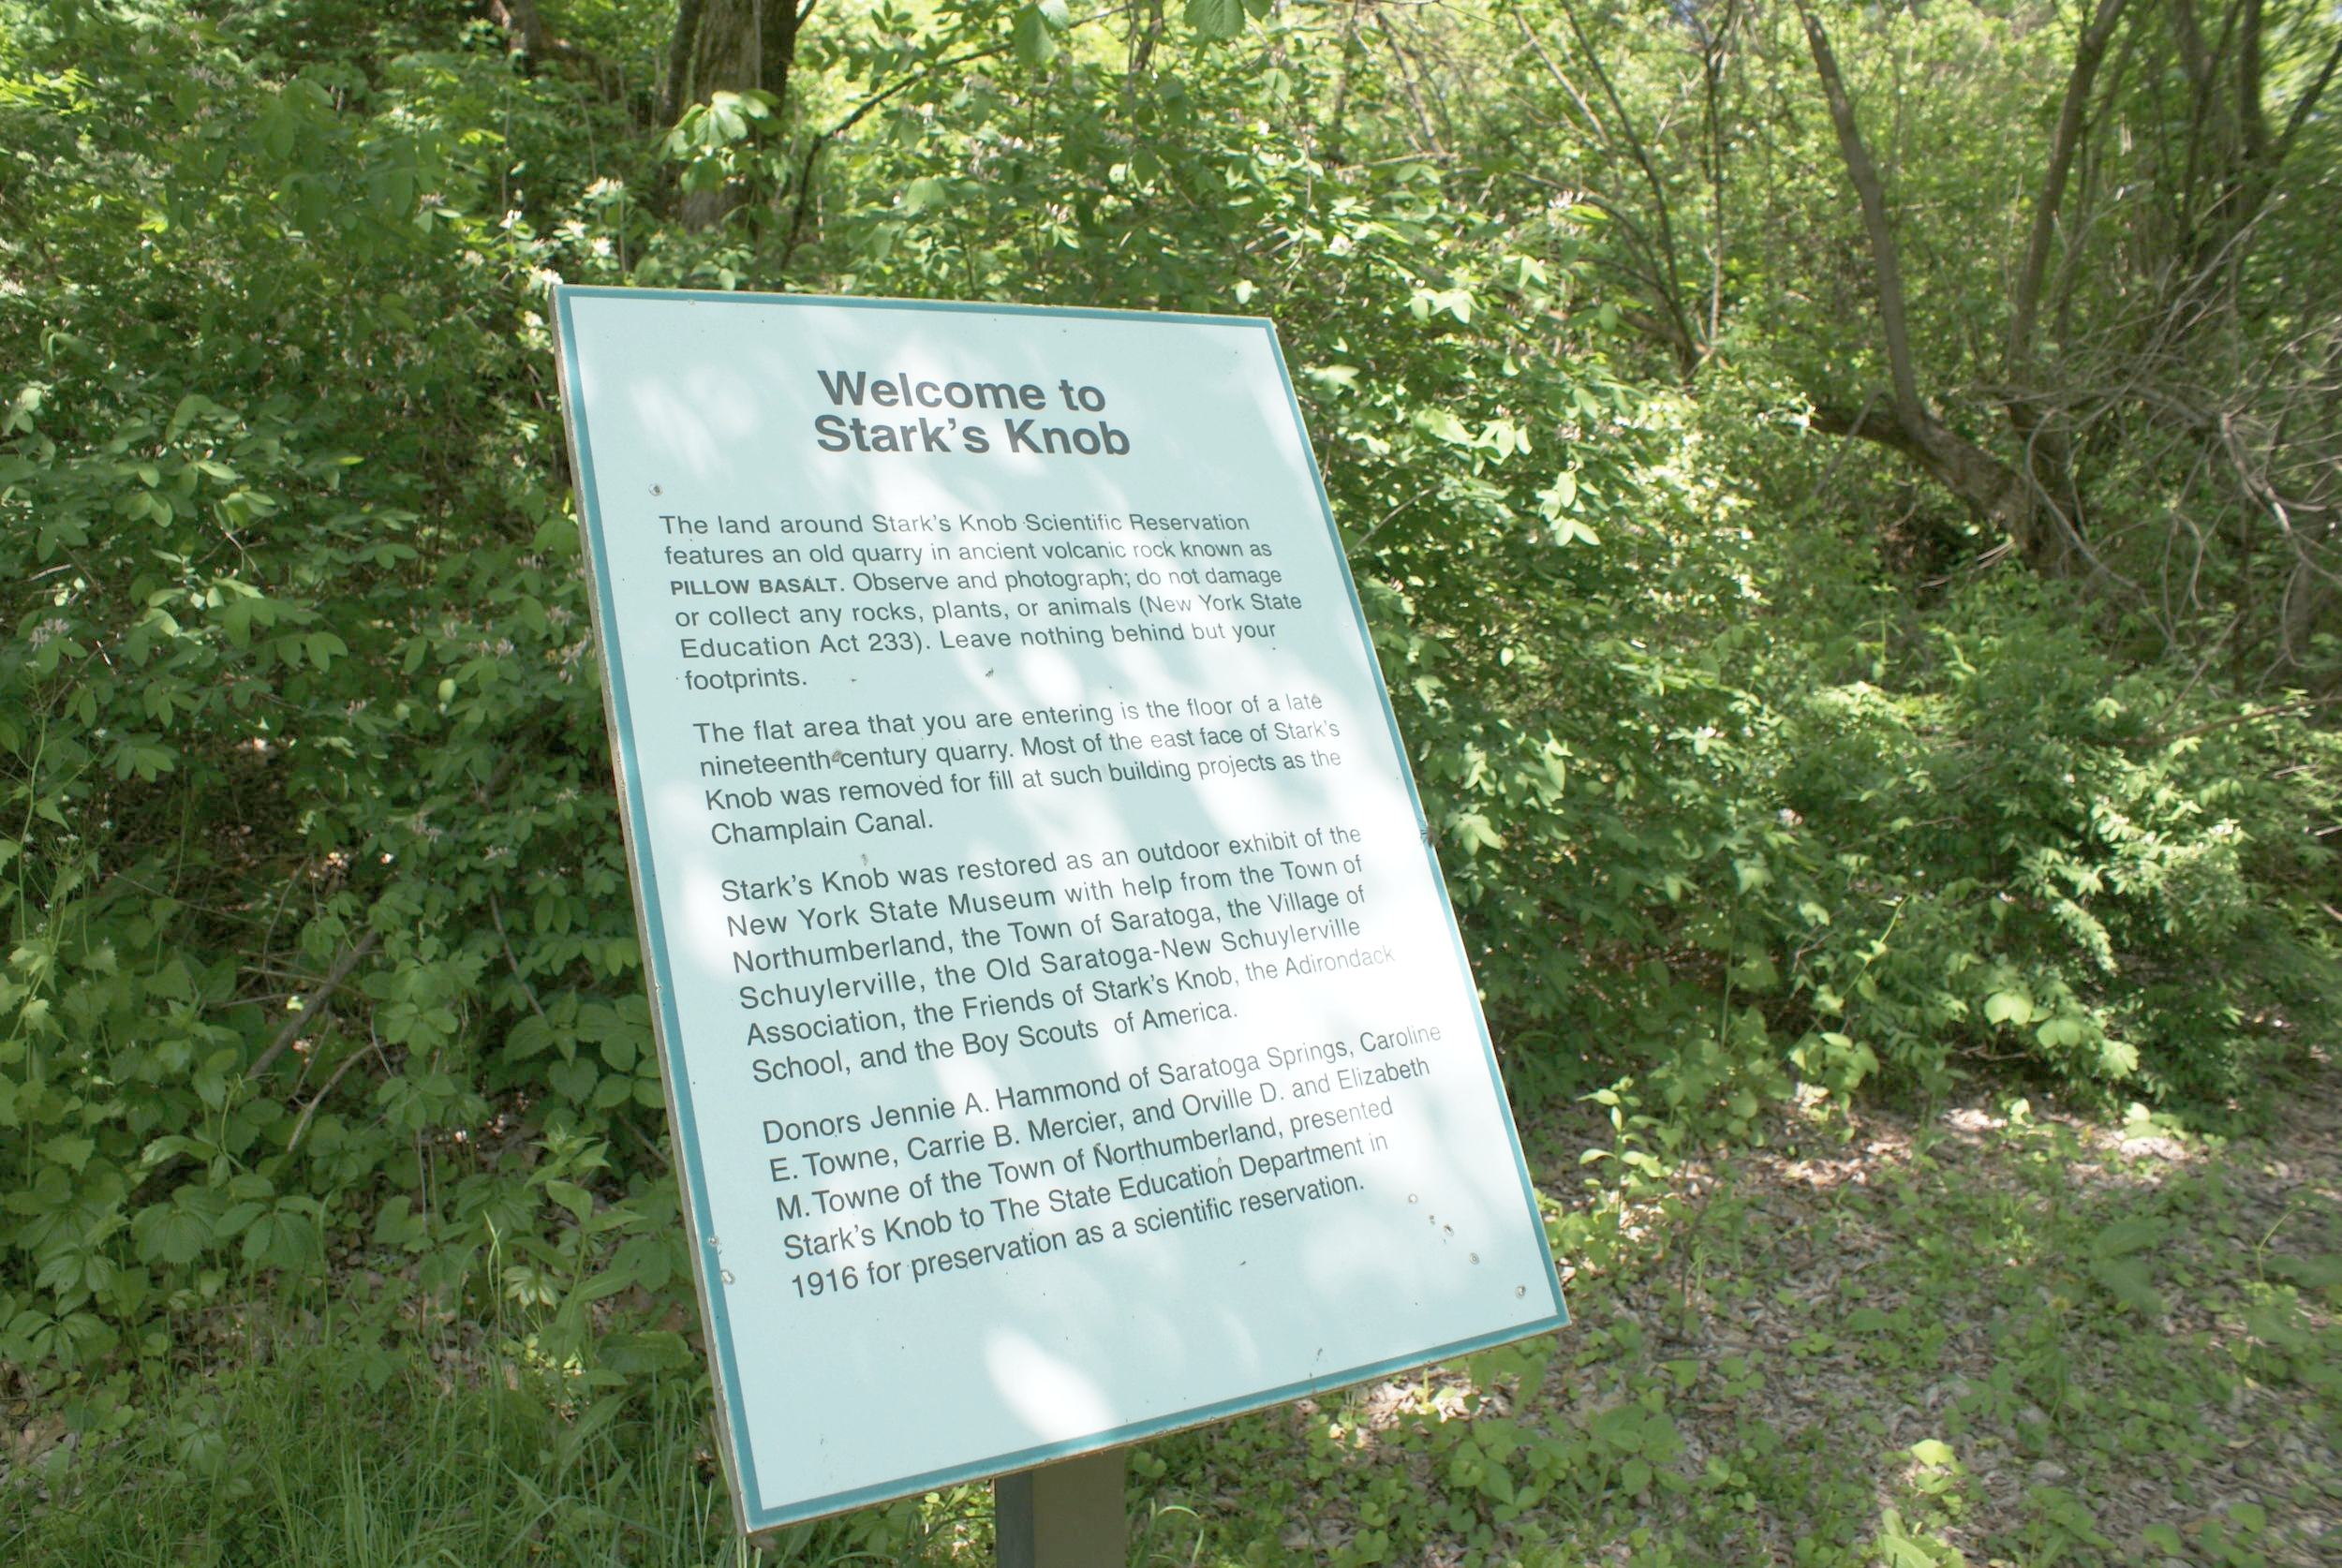 Interpretive signage informs visitors of the history of the site